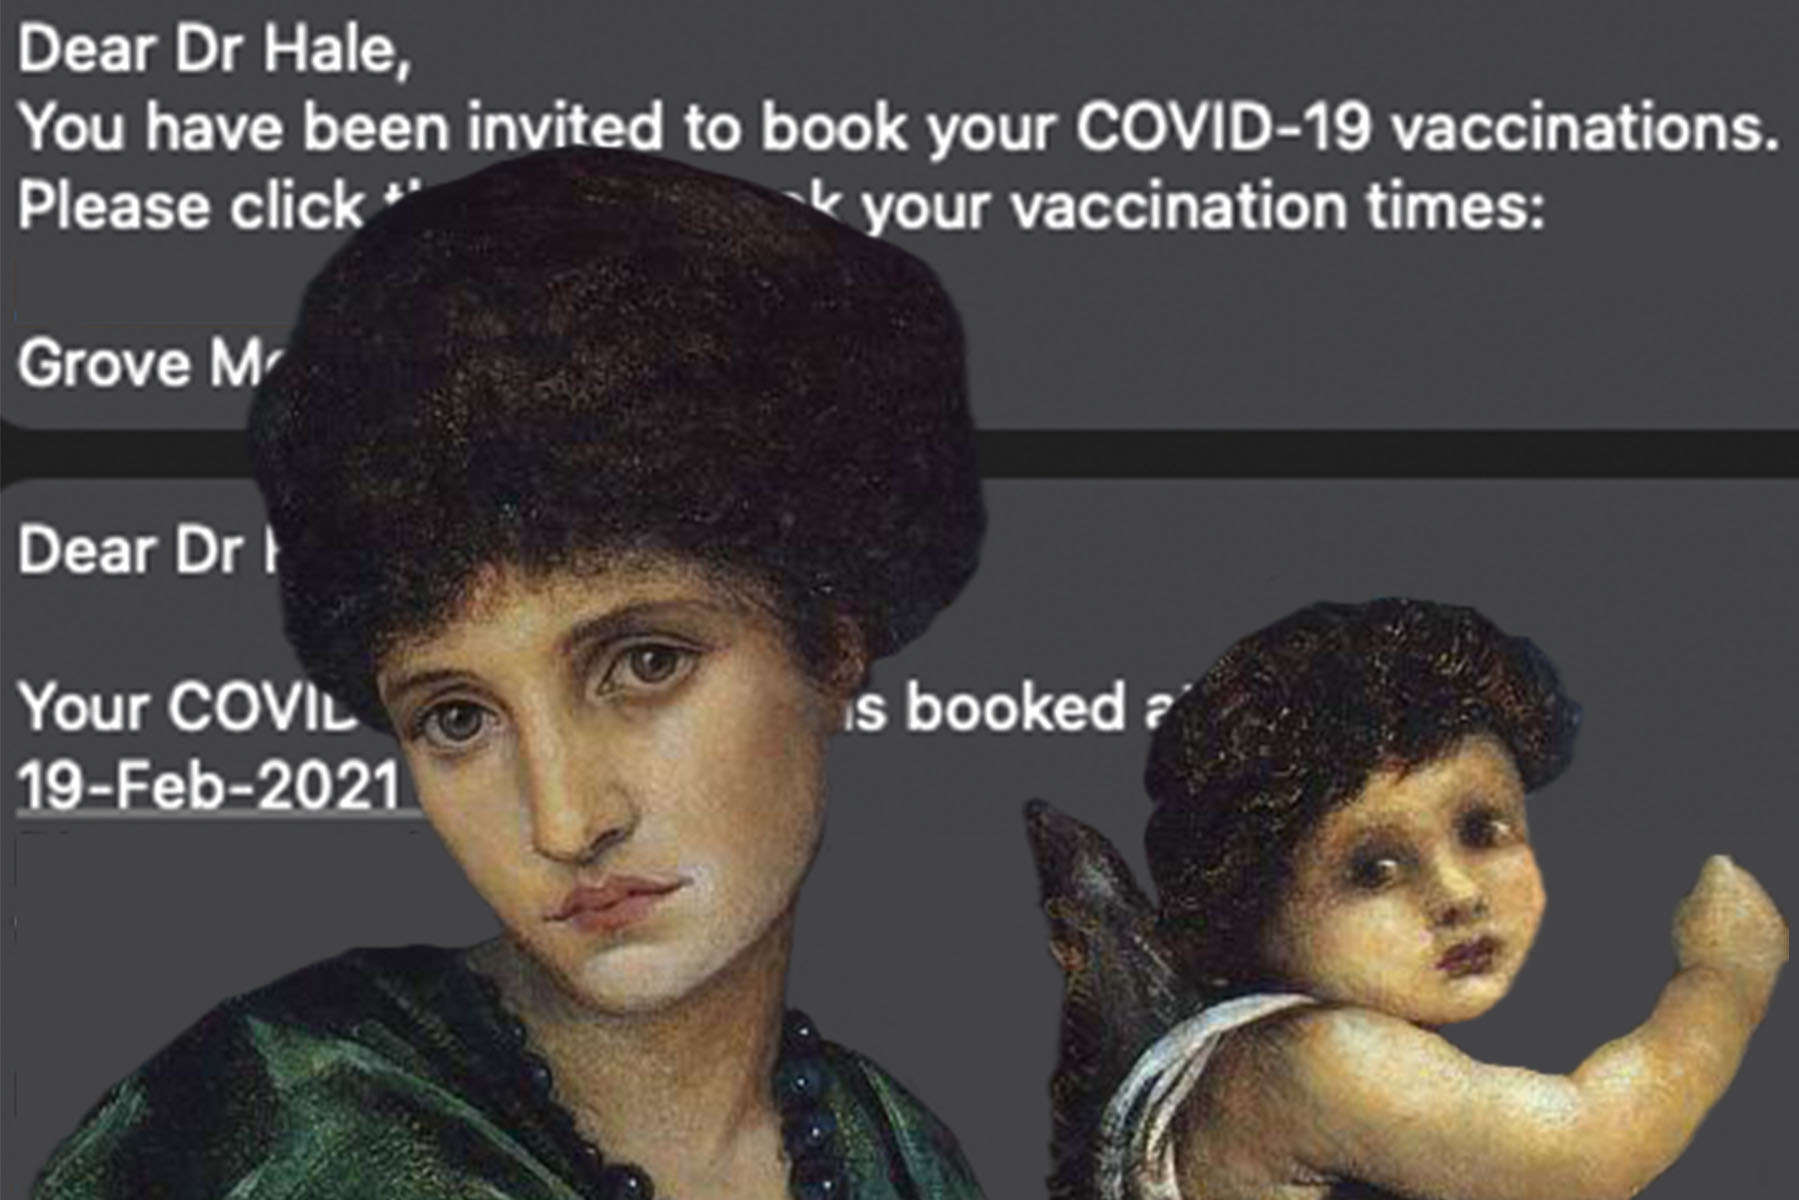 """Edward Burne-Jones's """"Cupid and Psyche"""" (1870) adorning the text I received about scheduling my first Covid-19 vacciation"""